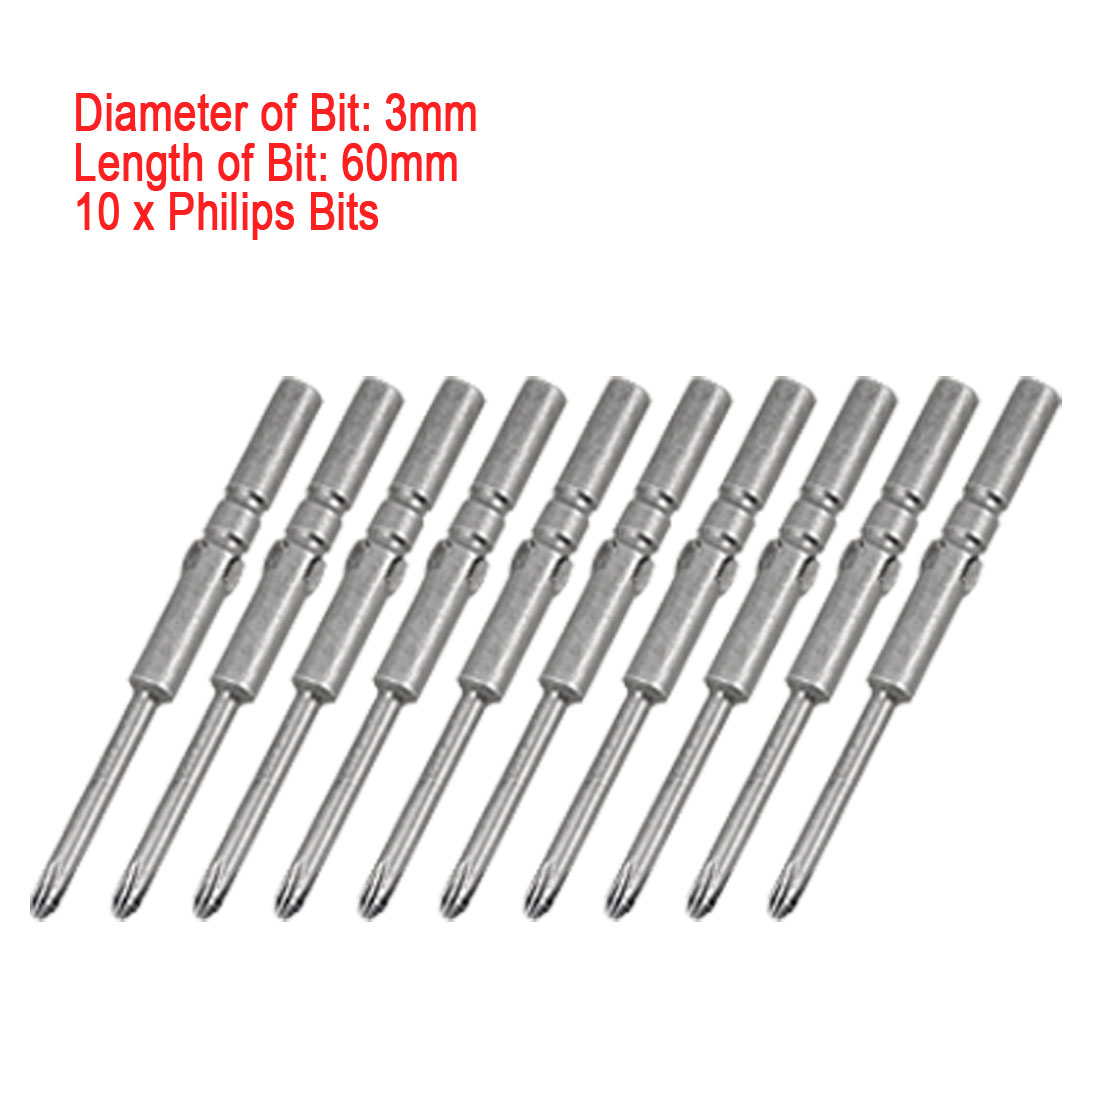 Magnetic 5 x 60 x 3mm Phillips Bits for Electric Screwdriver 10 PCS